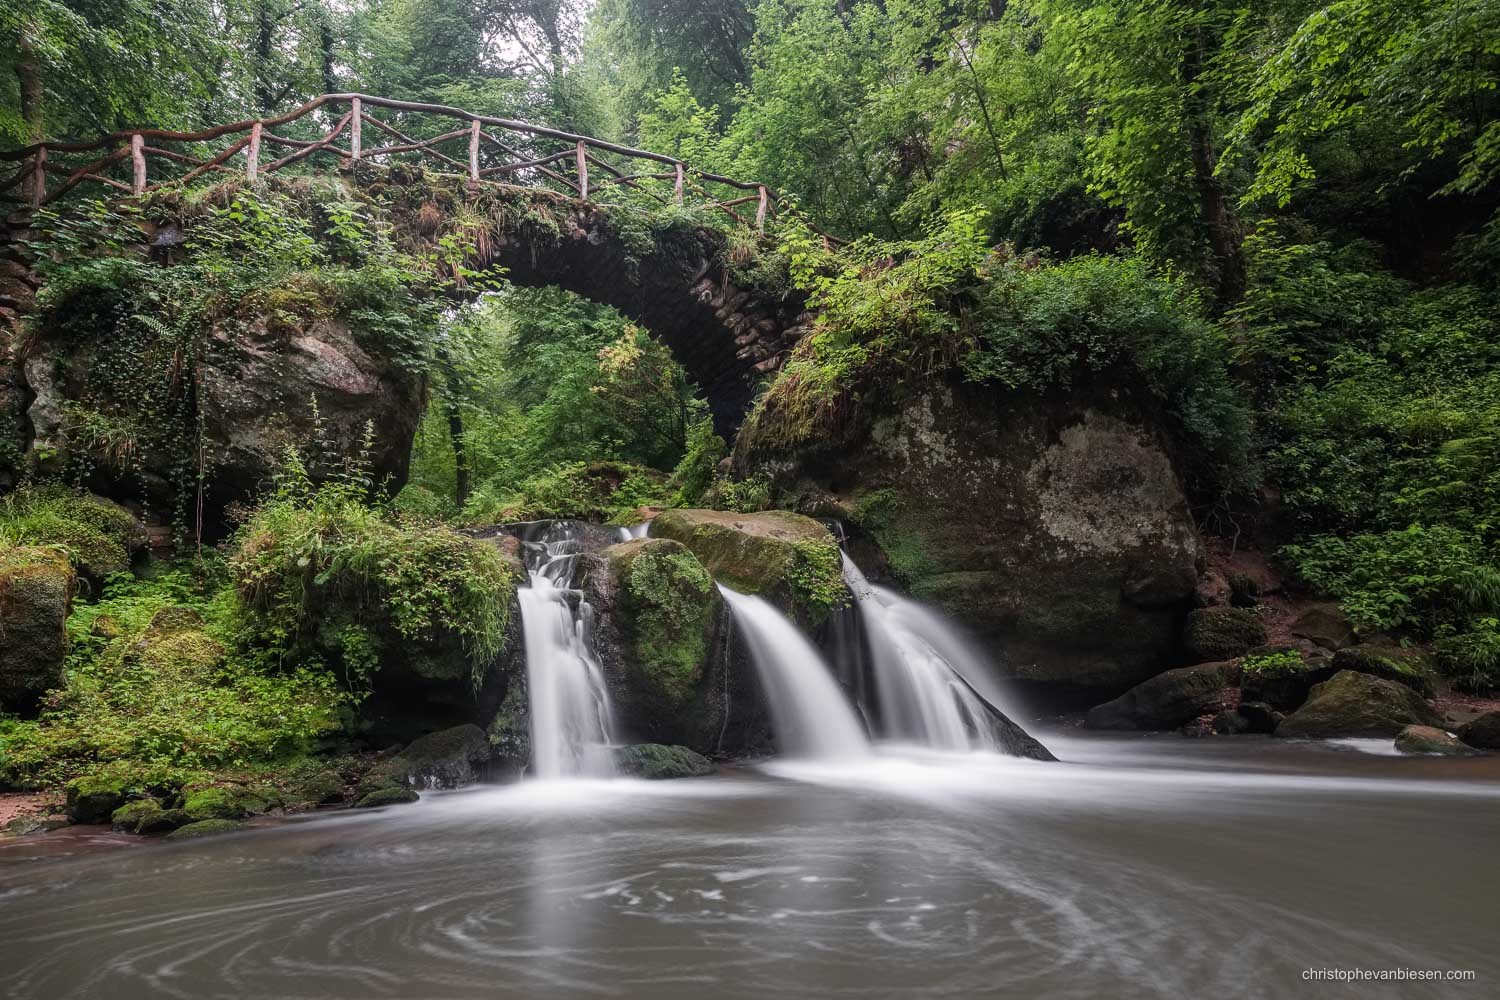 Visit the Mullerthal - Luxembourg - Luxembourg's Schiessentumpel waterfall in the Mullerthal region on a rainy summer day - Home of the Elves